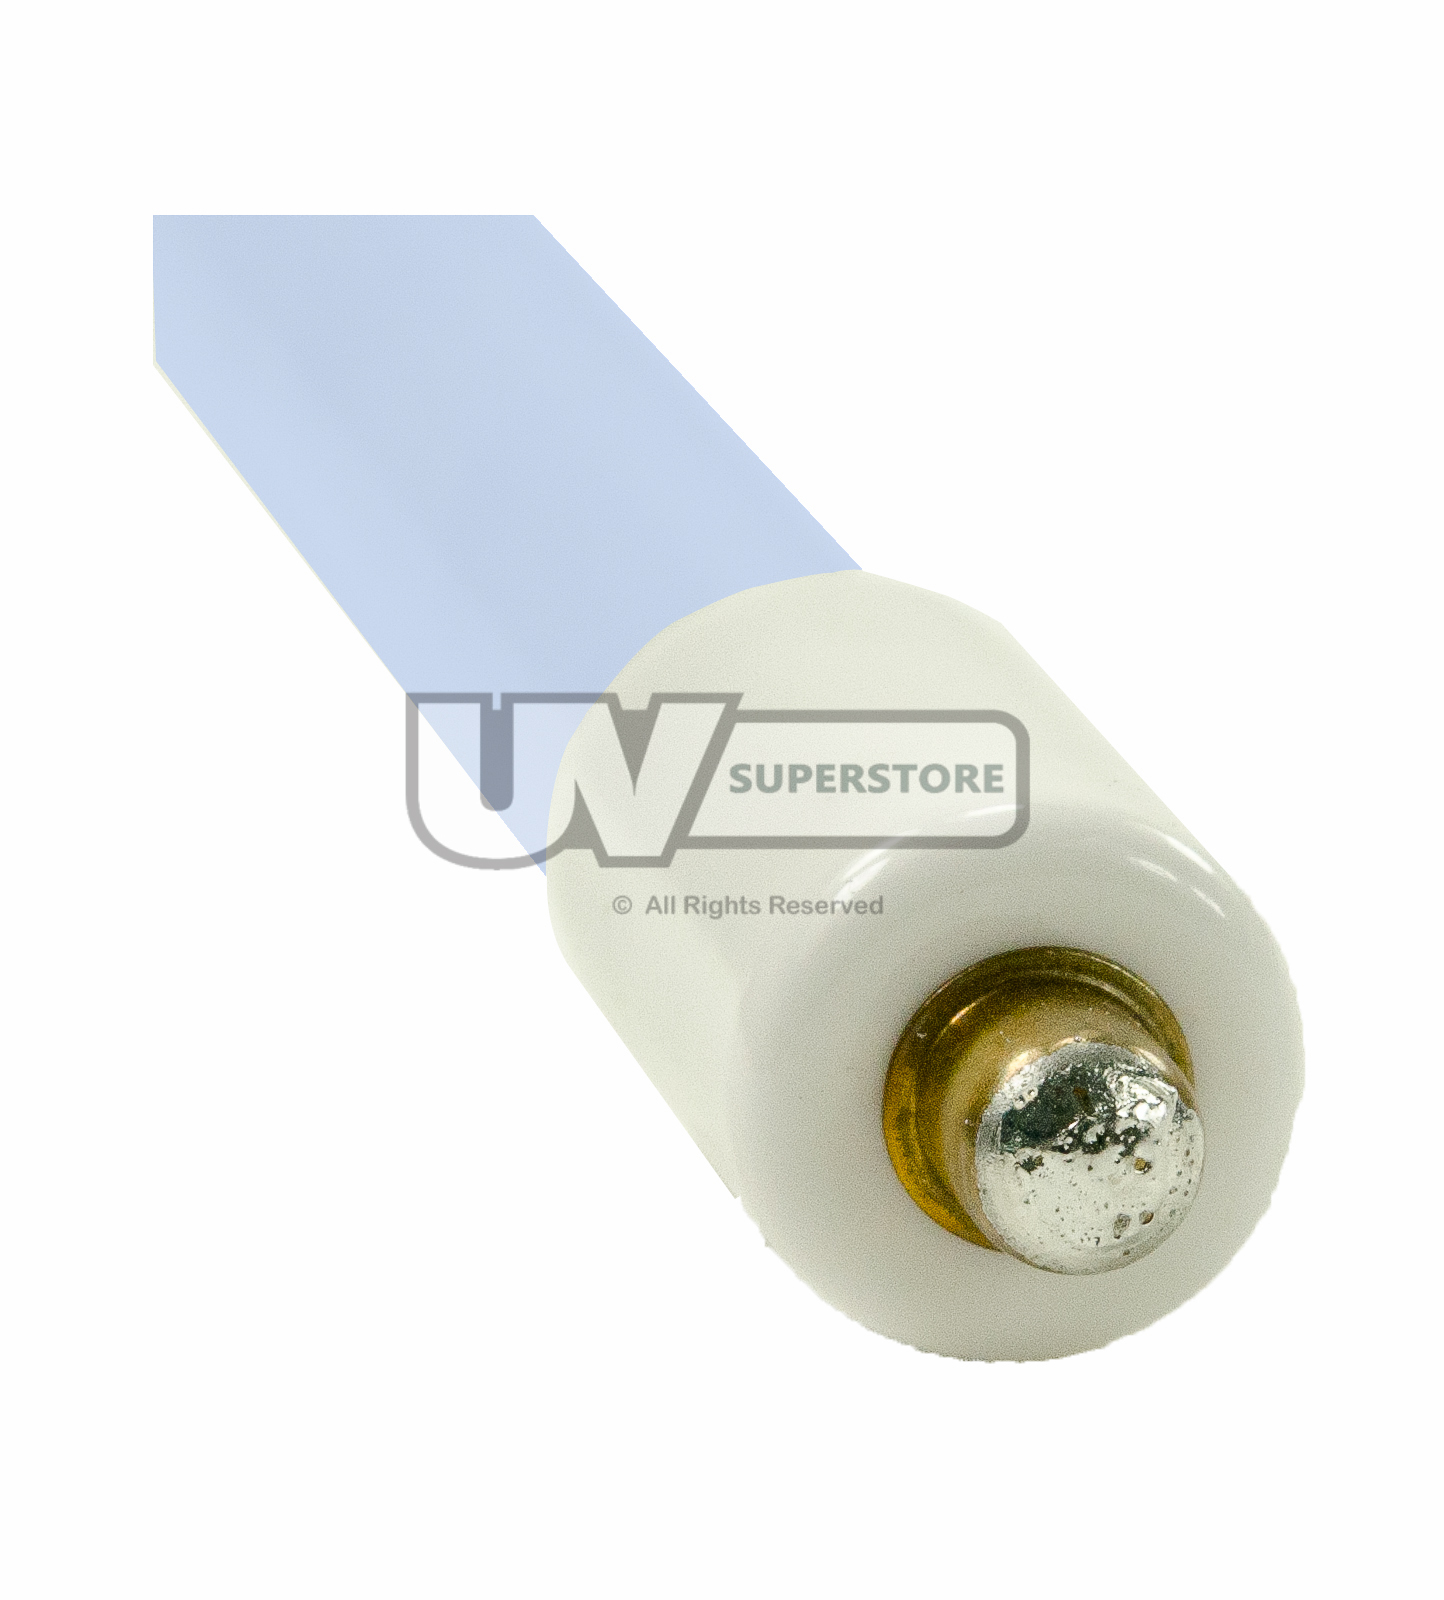 G48t5l Replacement Uv Lamp 254nm Uv Superstore Inc